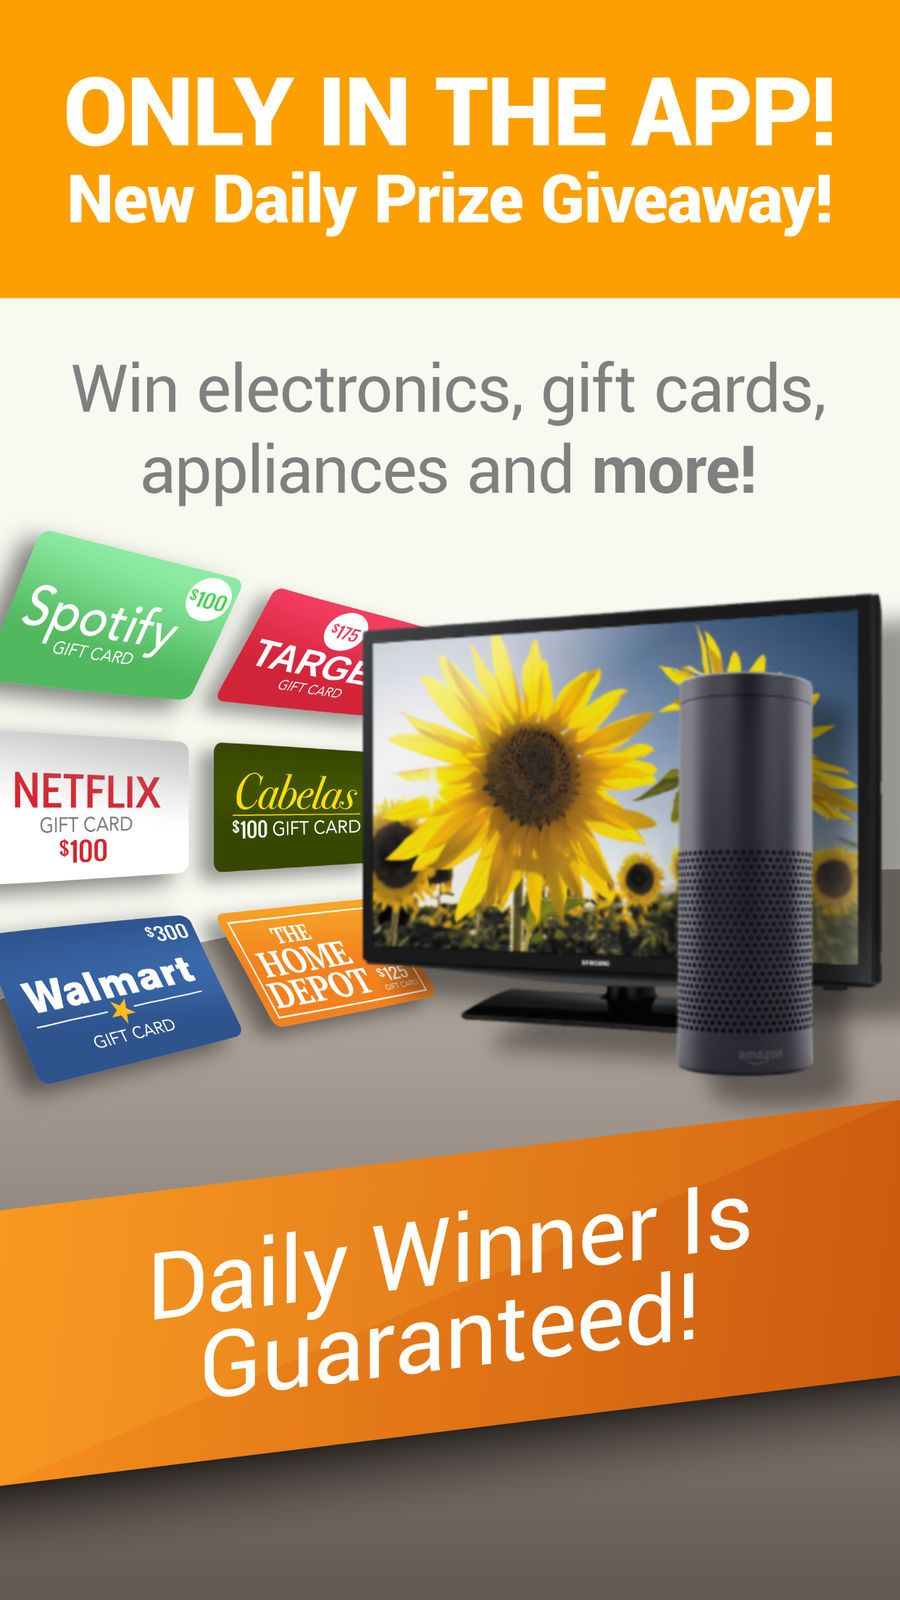 The PCH App EntertainmentLifestyleappsios Prize